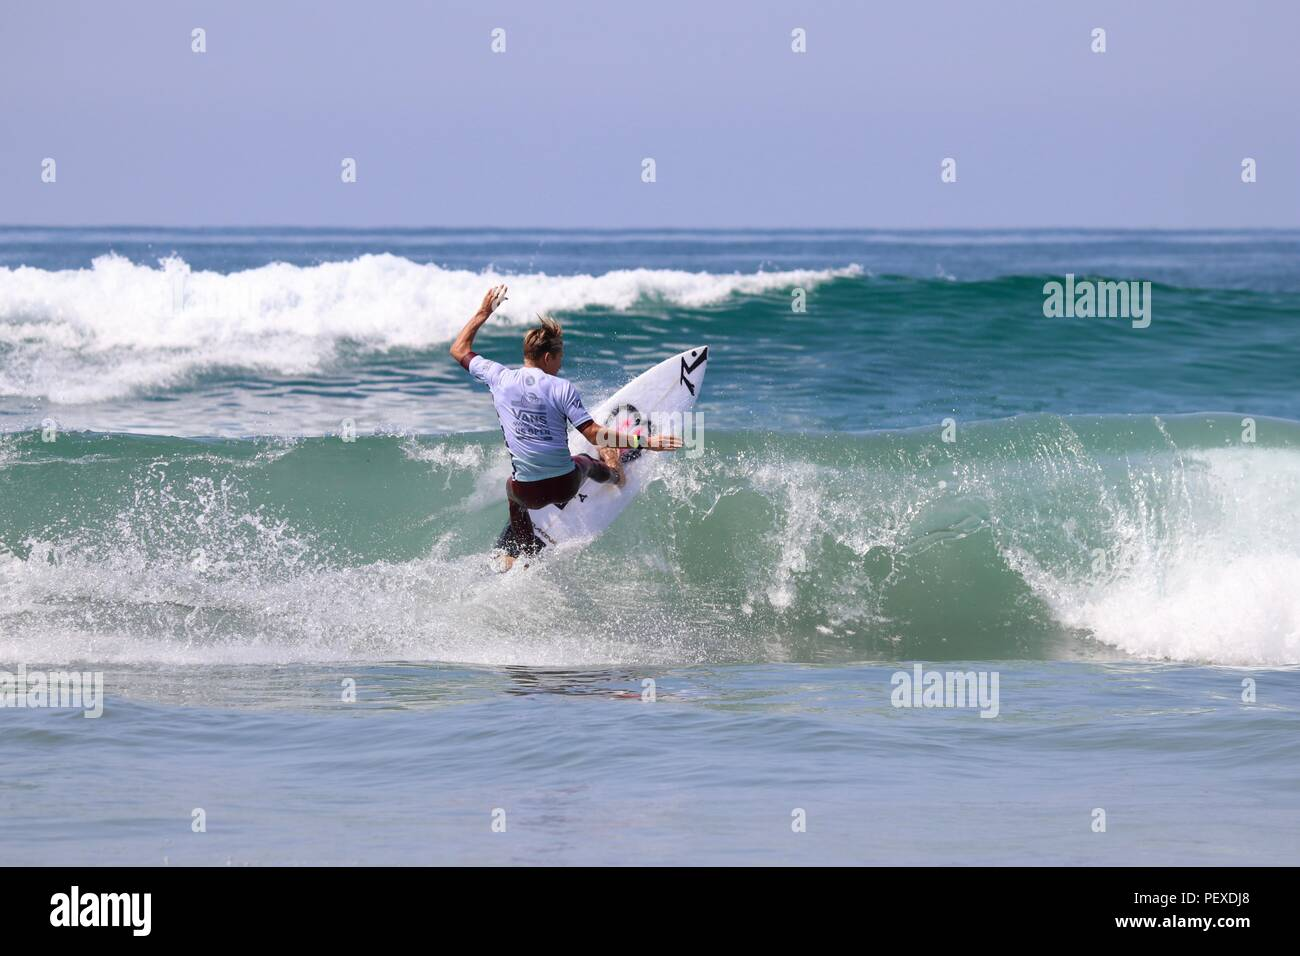 Kevin Schulz competing in the US Open of Surfing 2018 - Stock Image